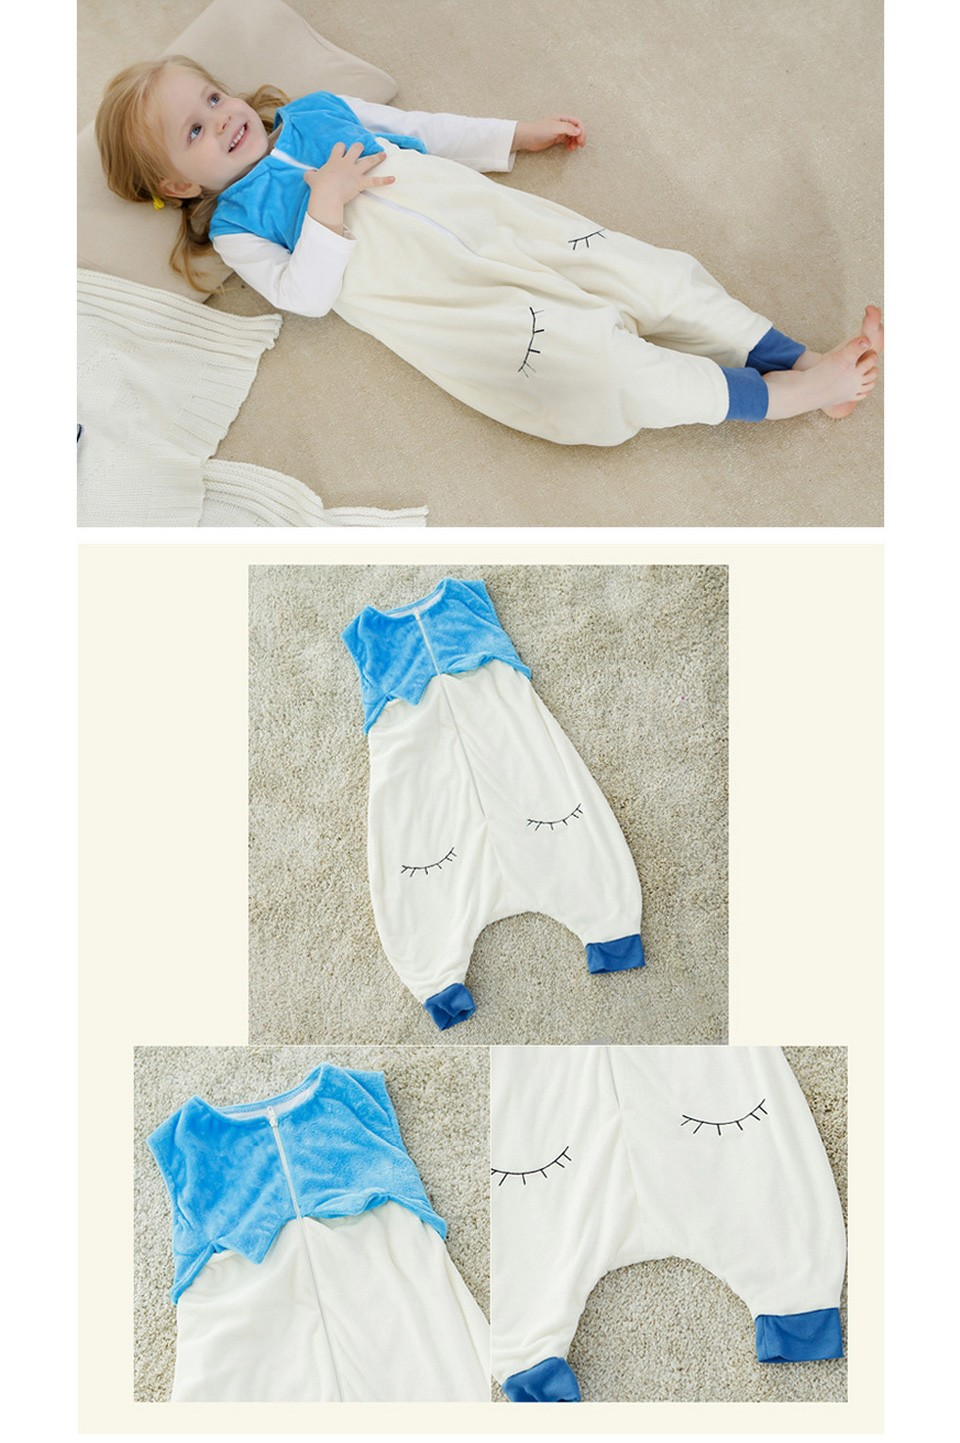 31d87ee665 New Arrival Newborn Sleeveless Baby Sleeping Bag Embroidery Cartoon ...